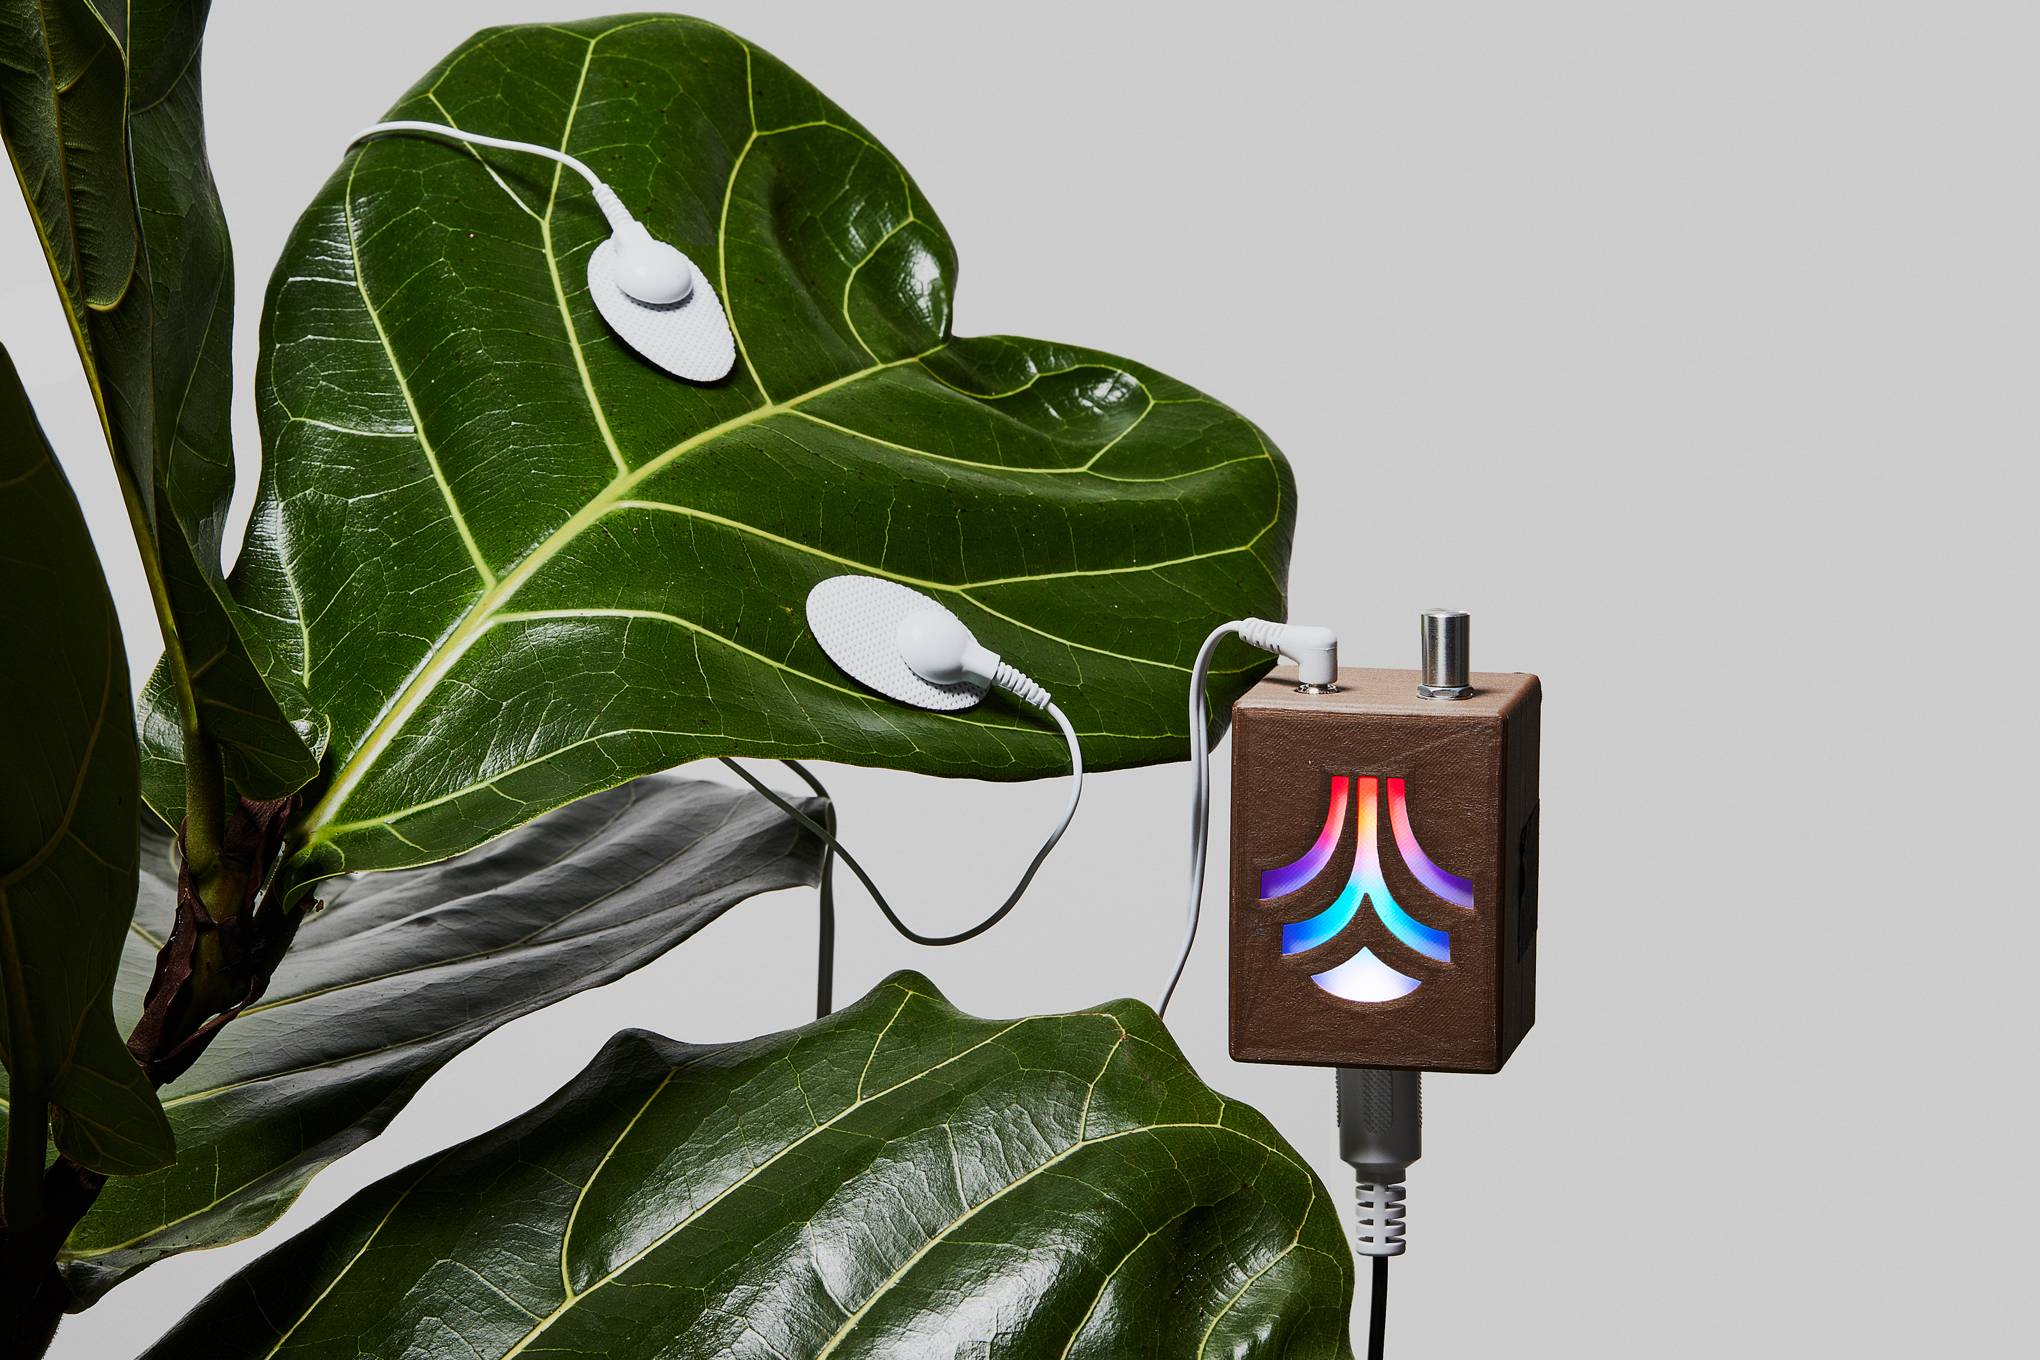 These clever gadgets will help your ailing houseplants thrive